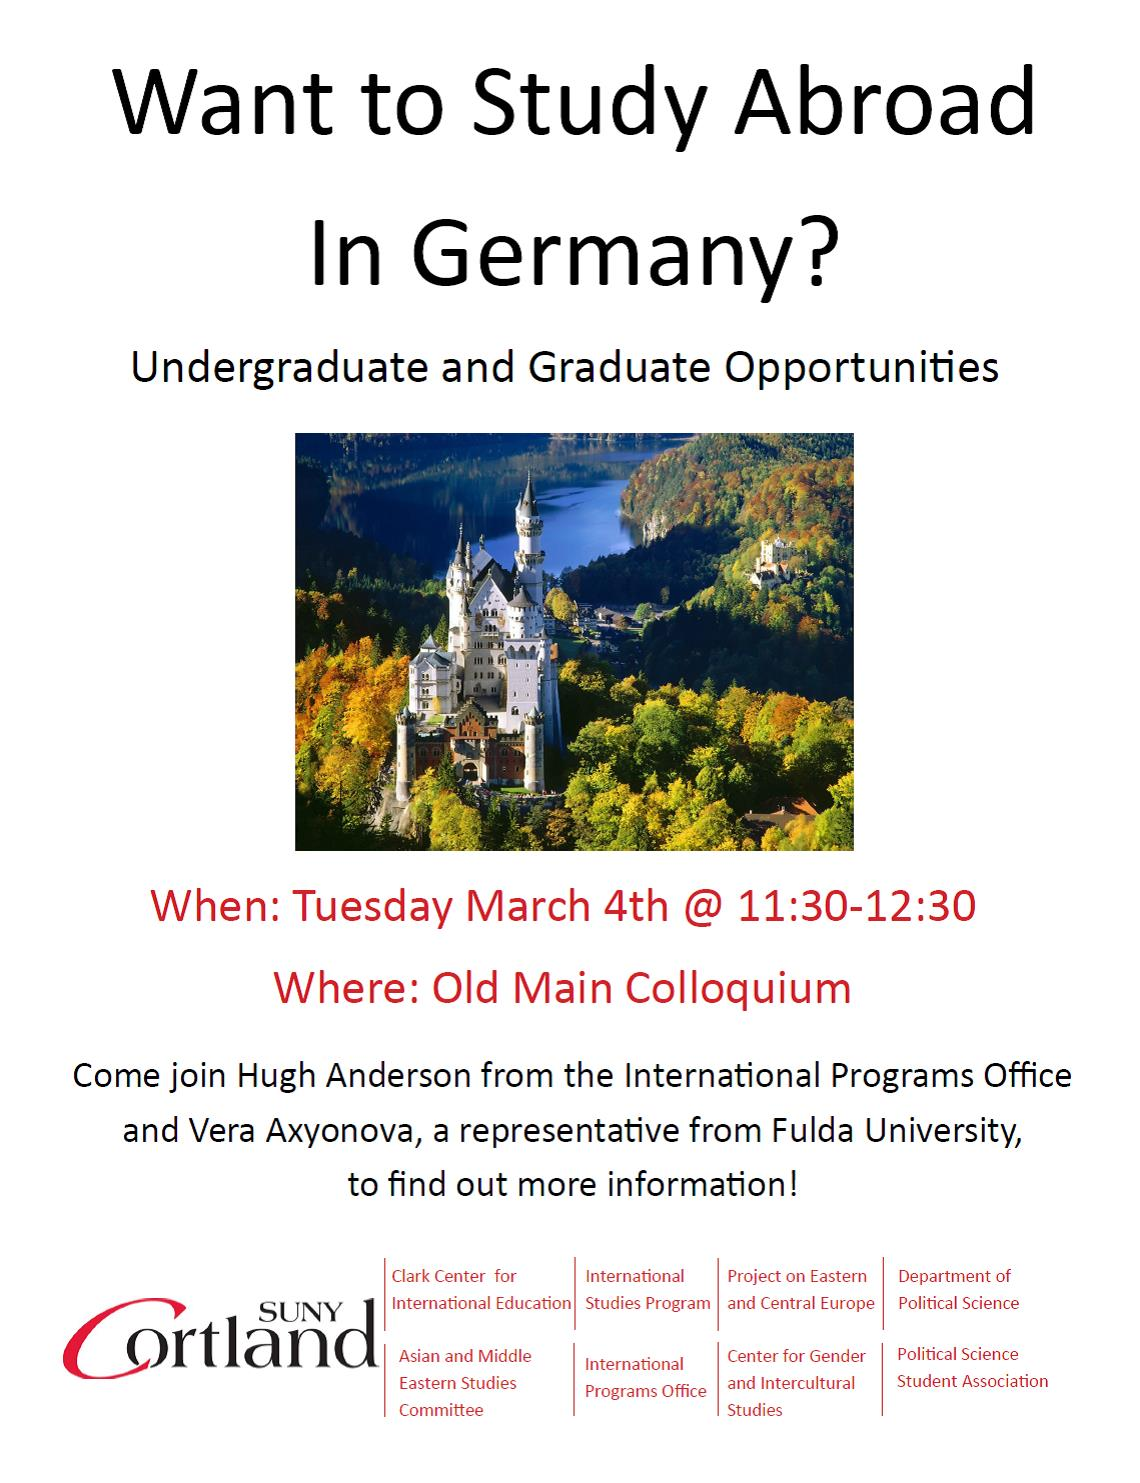 Want to Study Abroad in Germany?